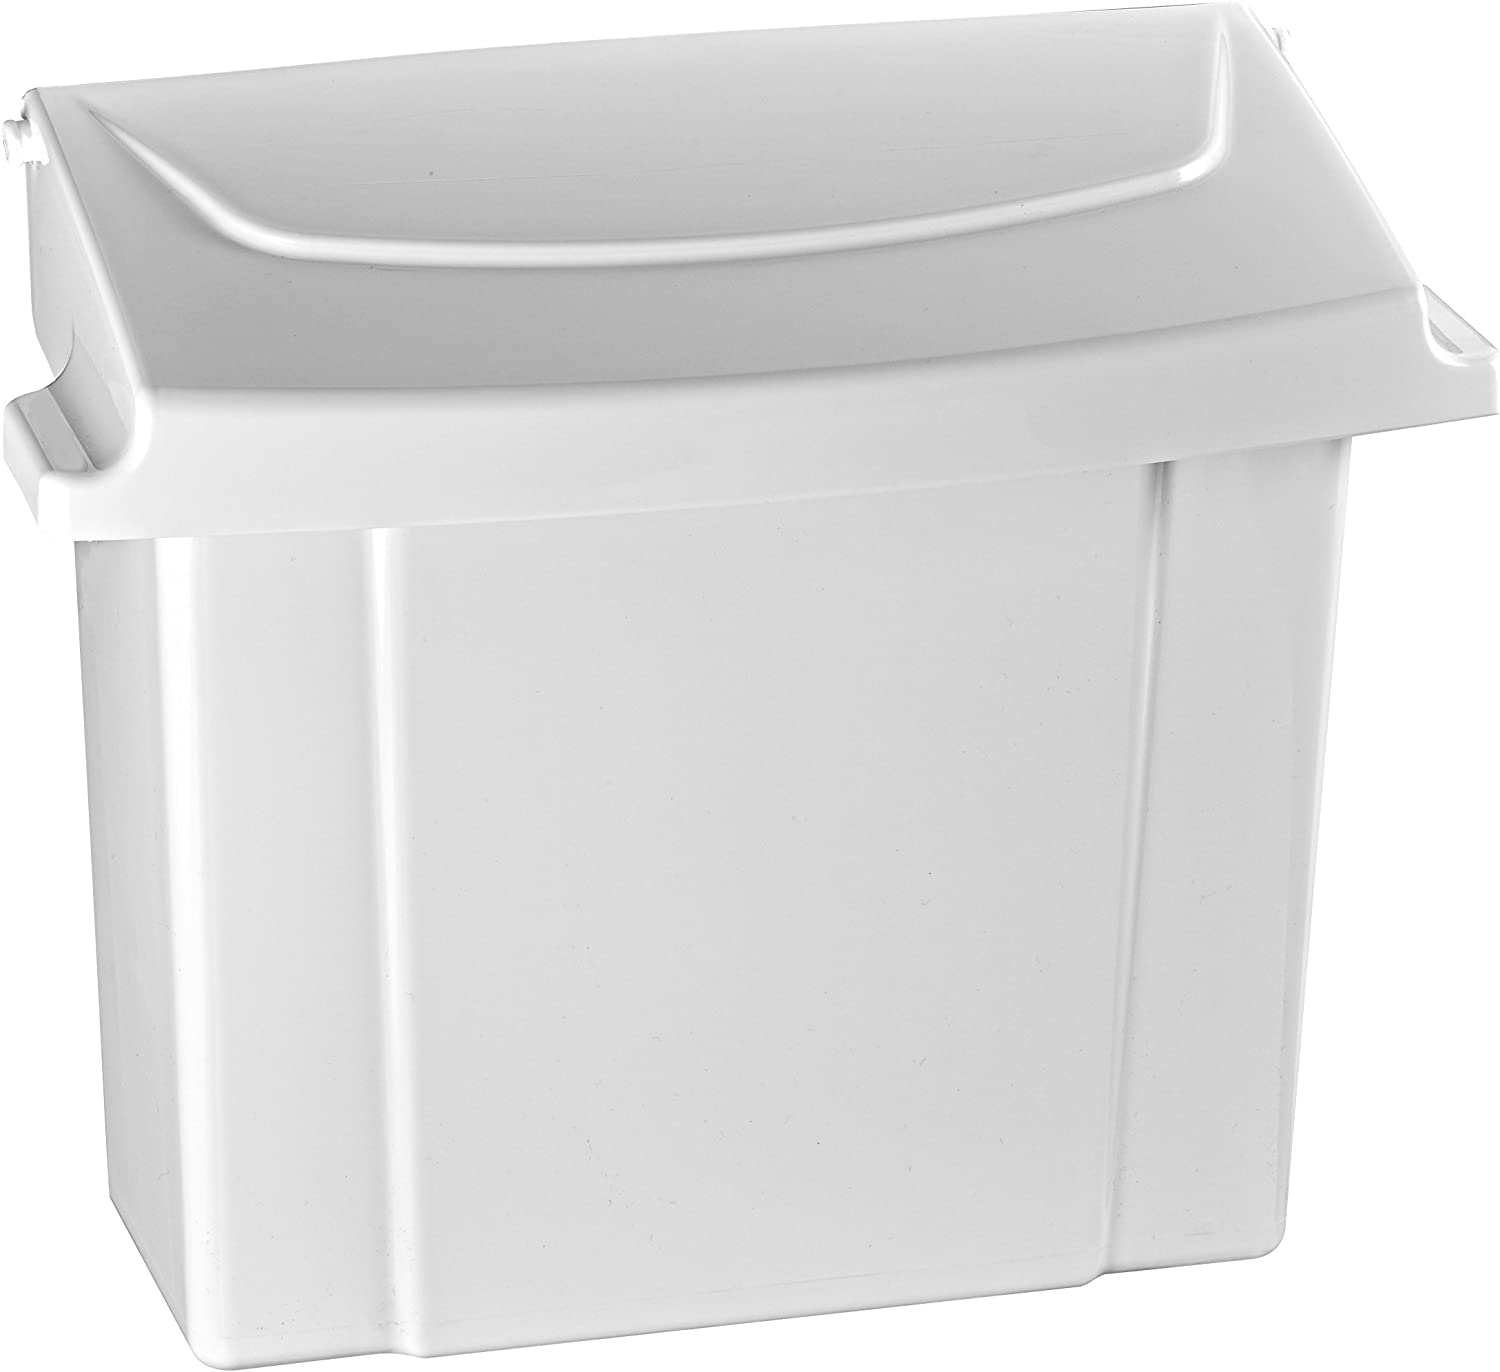 Alpine Sanitary Napkins Receptacle Feminine Hygiene Products Tampon Waste Disposal Container Durable Abs Plastic Seals Tightly Traps Odors Easy Installation Hardware Included White Amazon Ca Health Personal Care